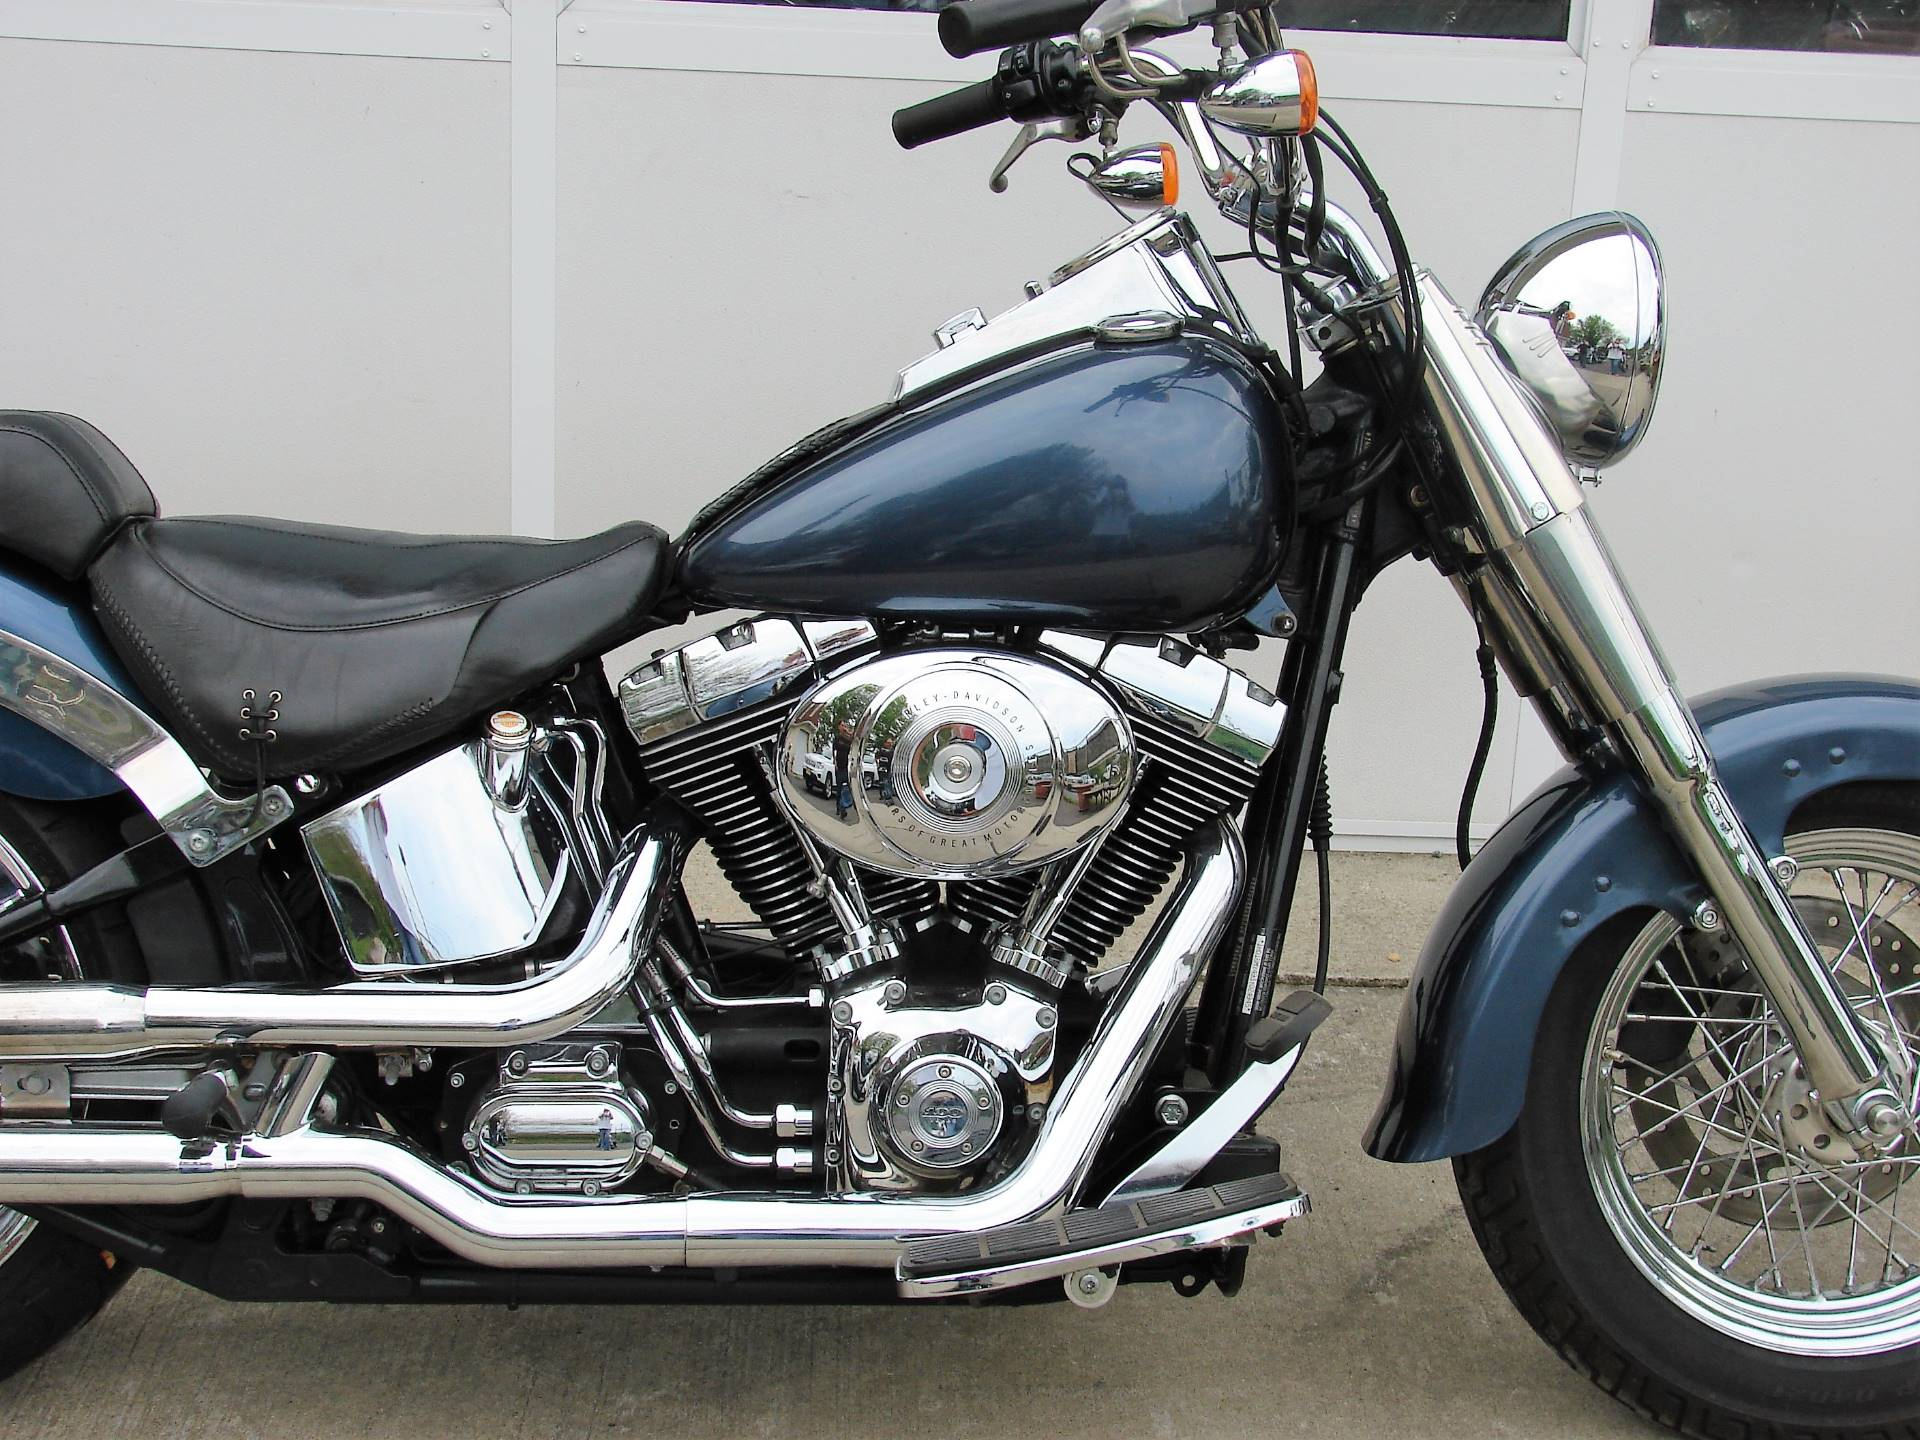 2003 Harley-Davidson Heritage Softail / Fatboy in Williamstown, New Jersey - Photo 9